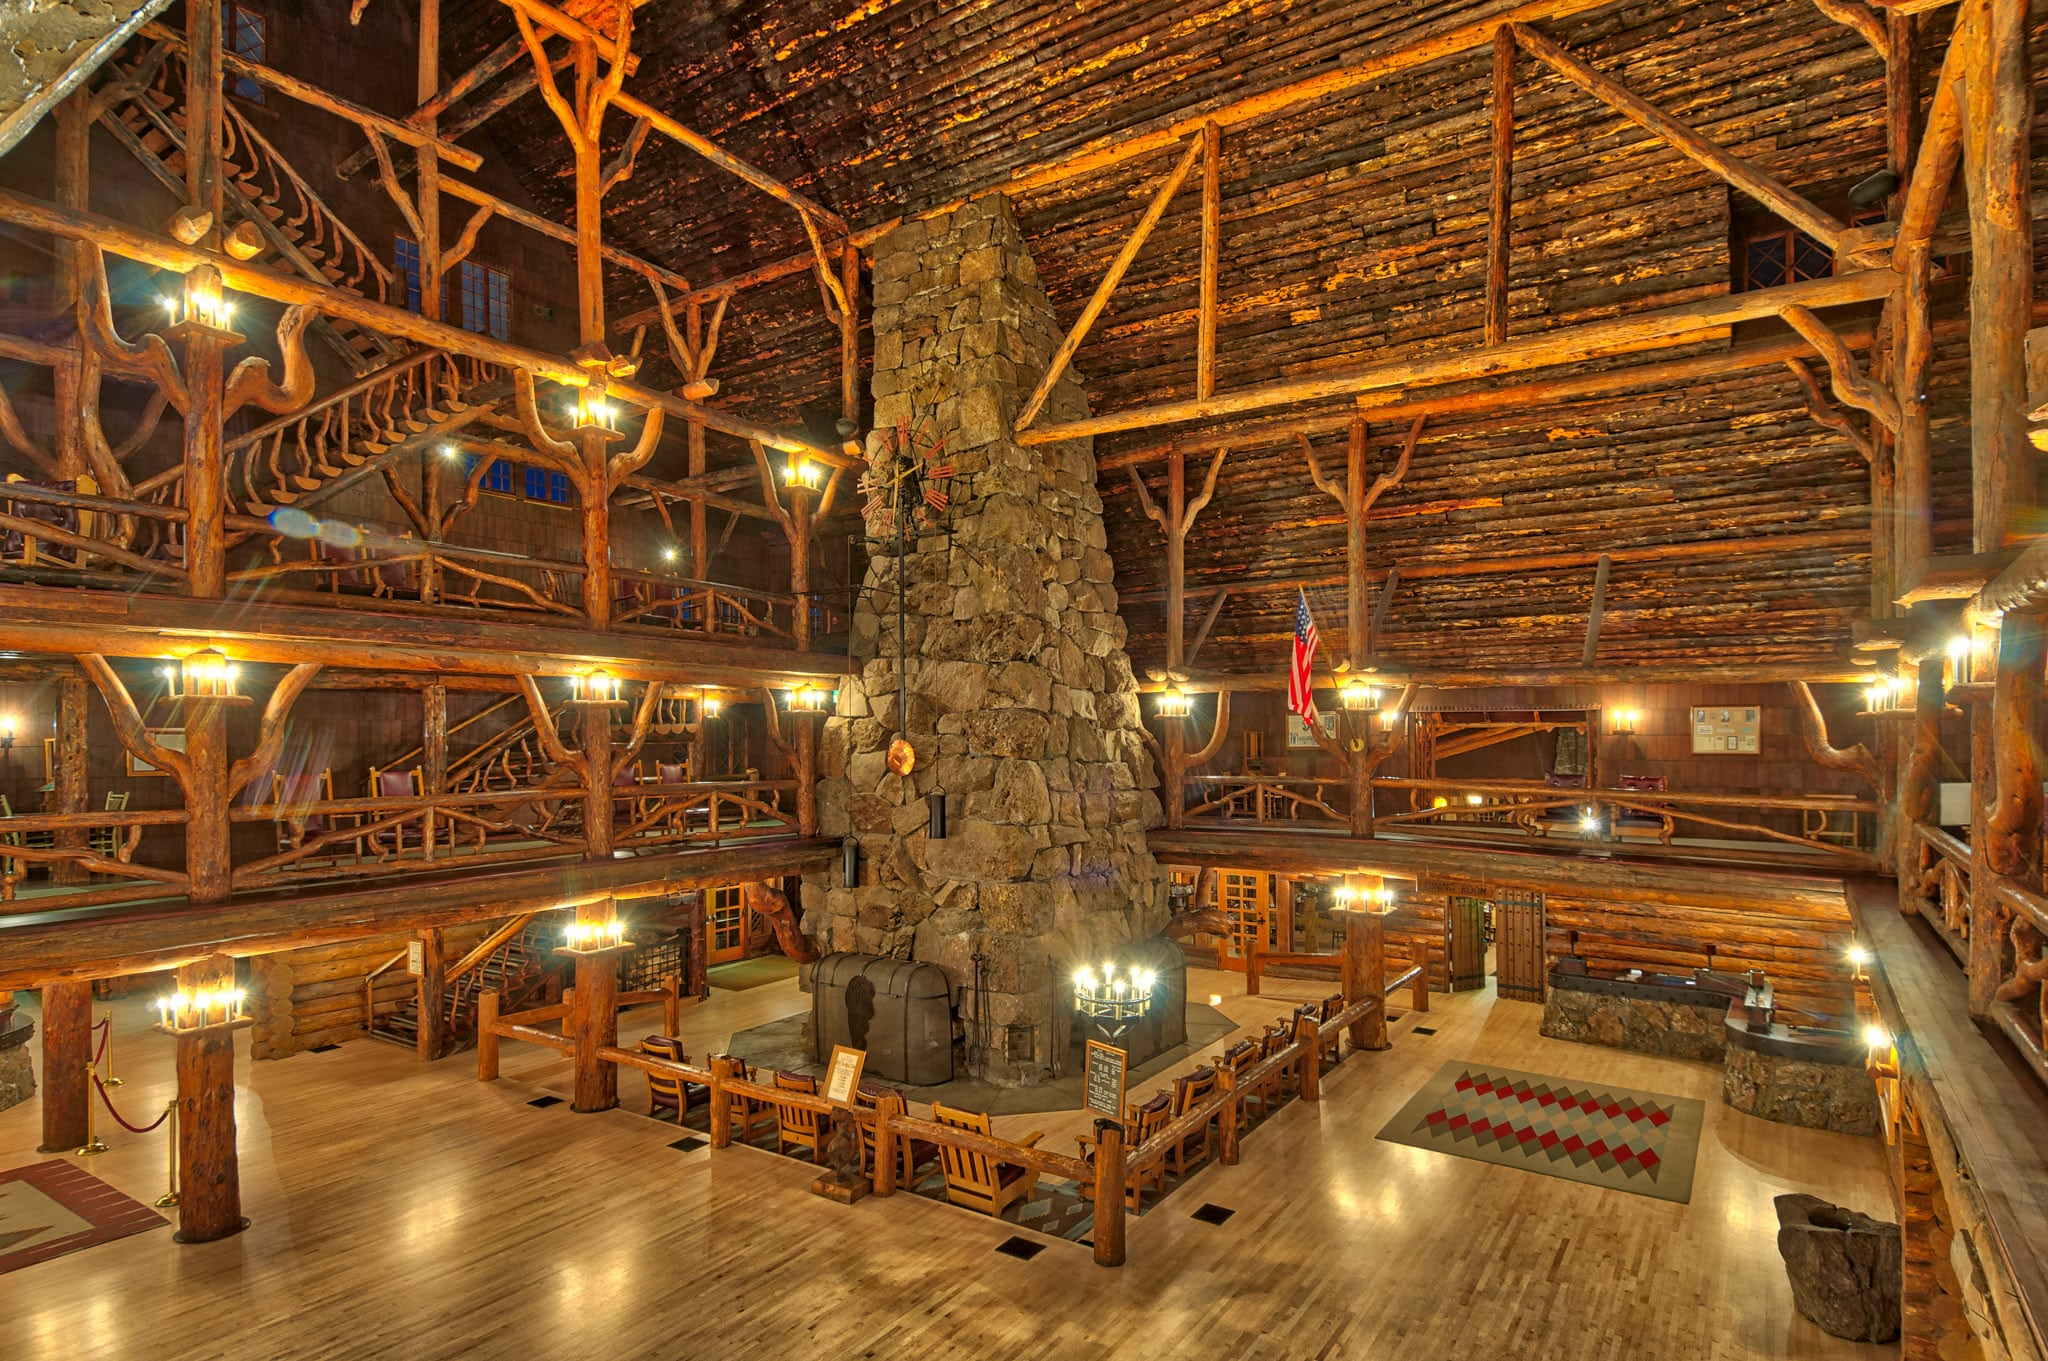 Interior views of Old Faithful Inn at dawn in Yellowstone National Park, Wyoming.